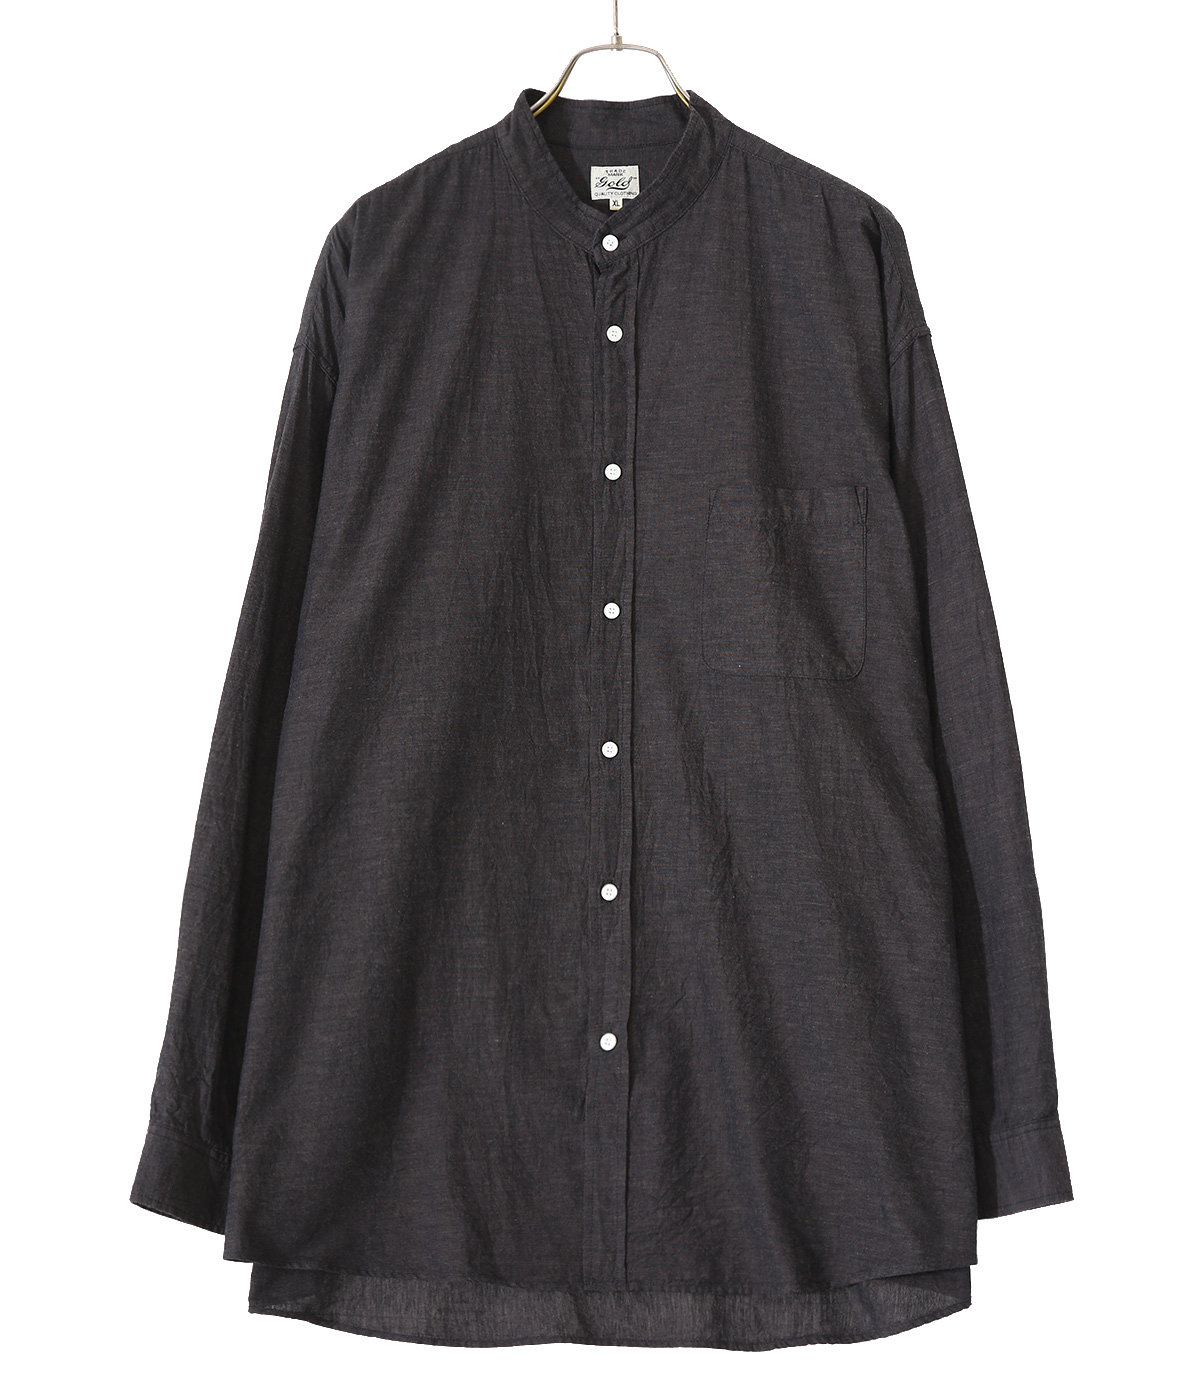 VAT DYE CHAMBRAY BAND COLLAR L/S SHIRT